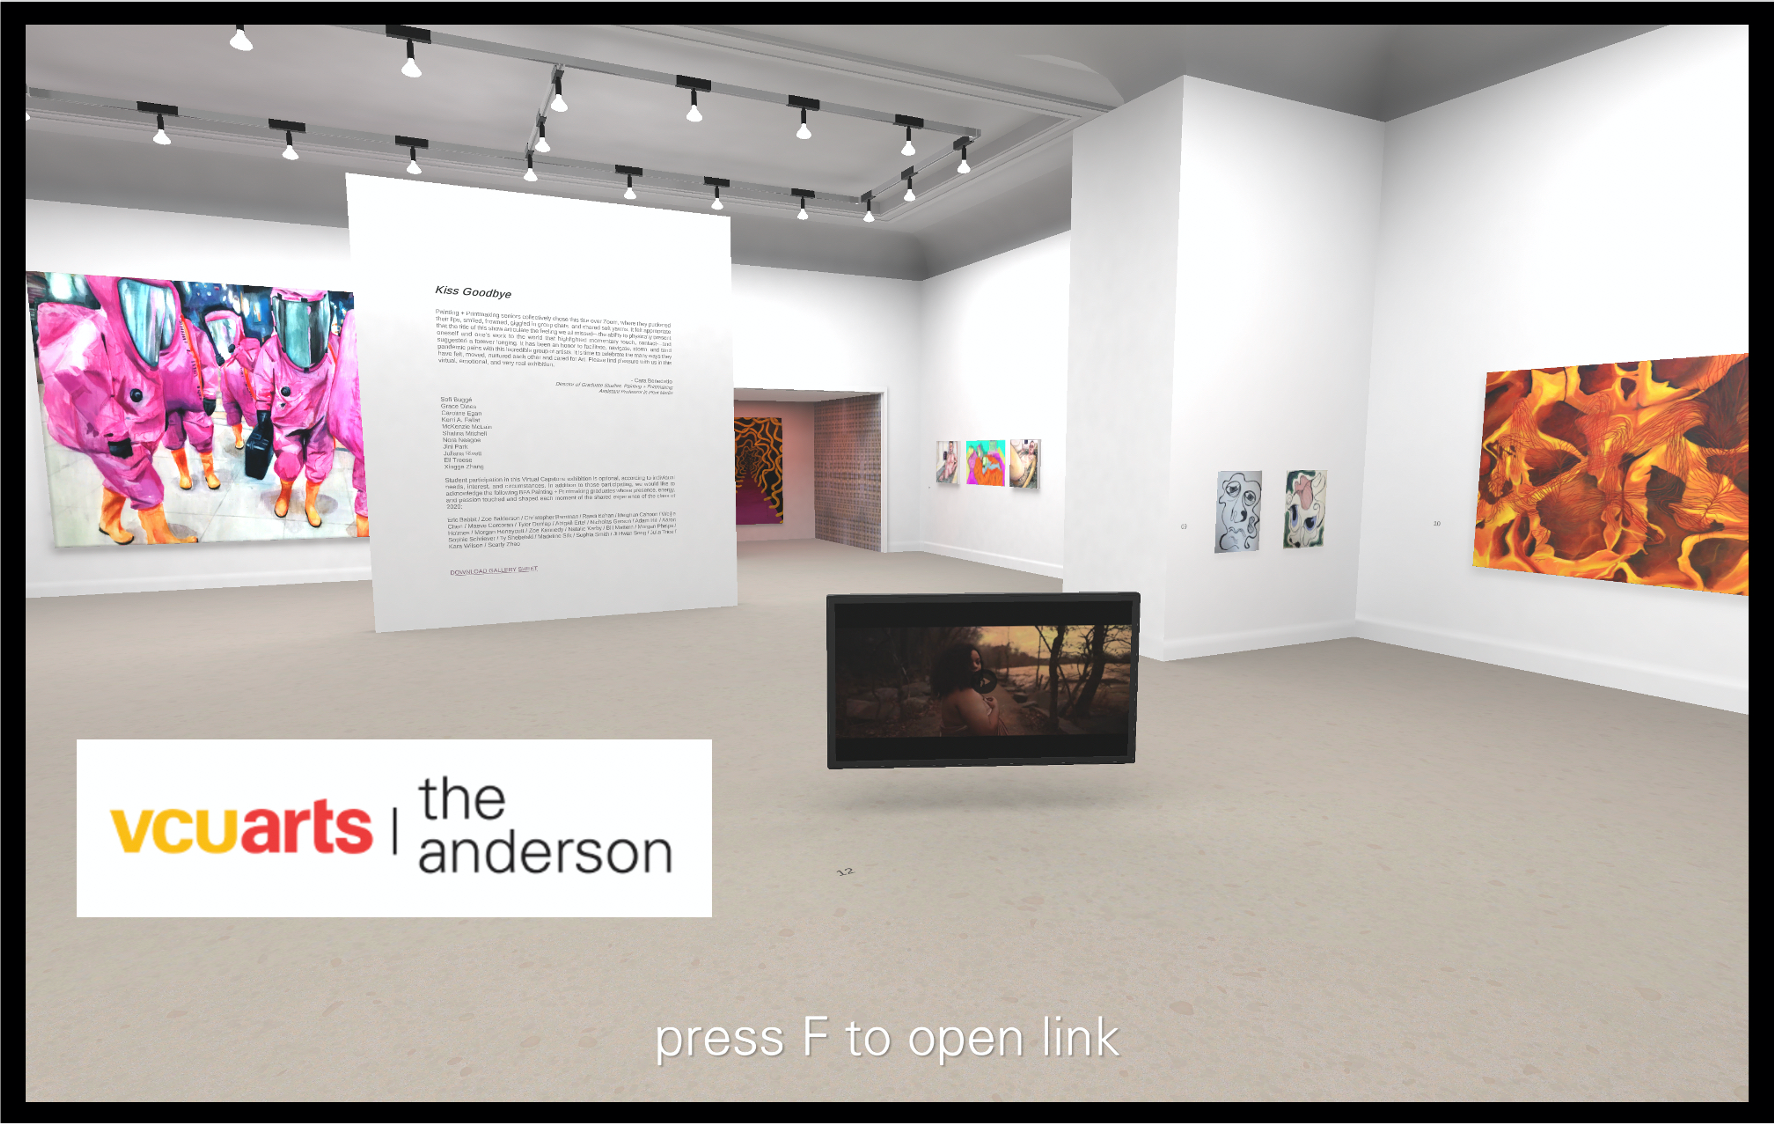 iew of the Painting + Printmaking Gallery from the 2020 BFA Capstone Exhibition at the Virtual Anderson. There are white walls and a series of objects hung on the wall and standing on the floor.